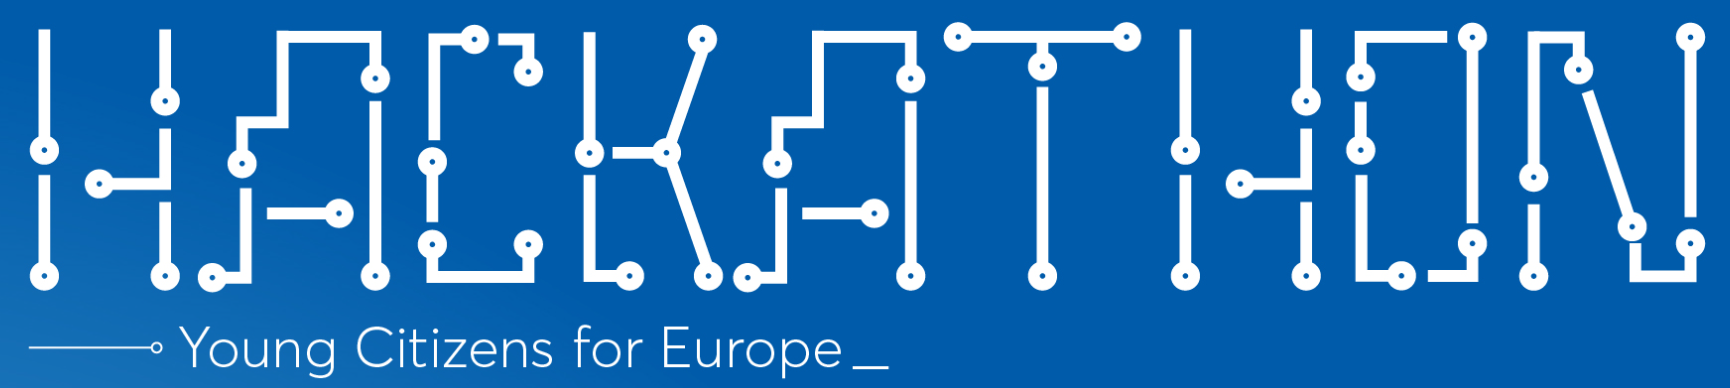 Logo eveniment Hackaton Young Citizens for Europe